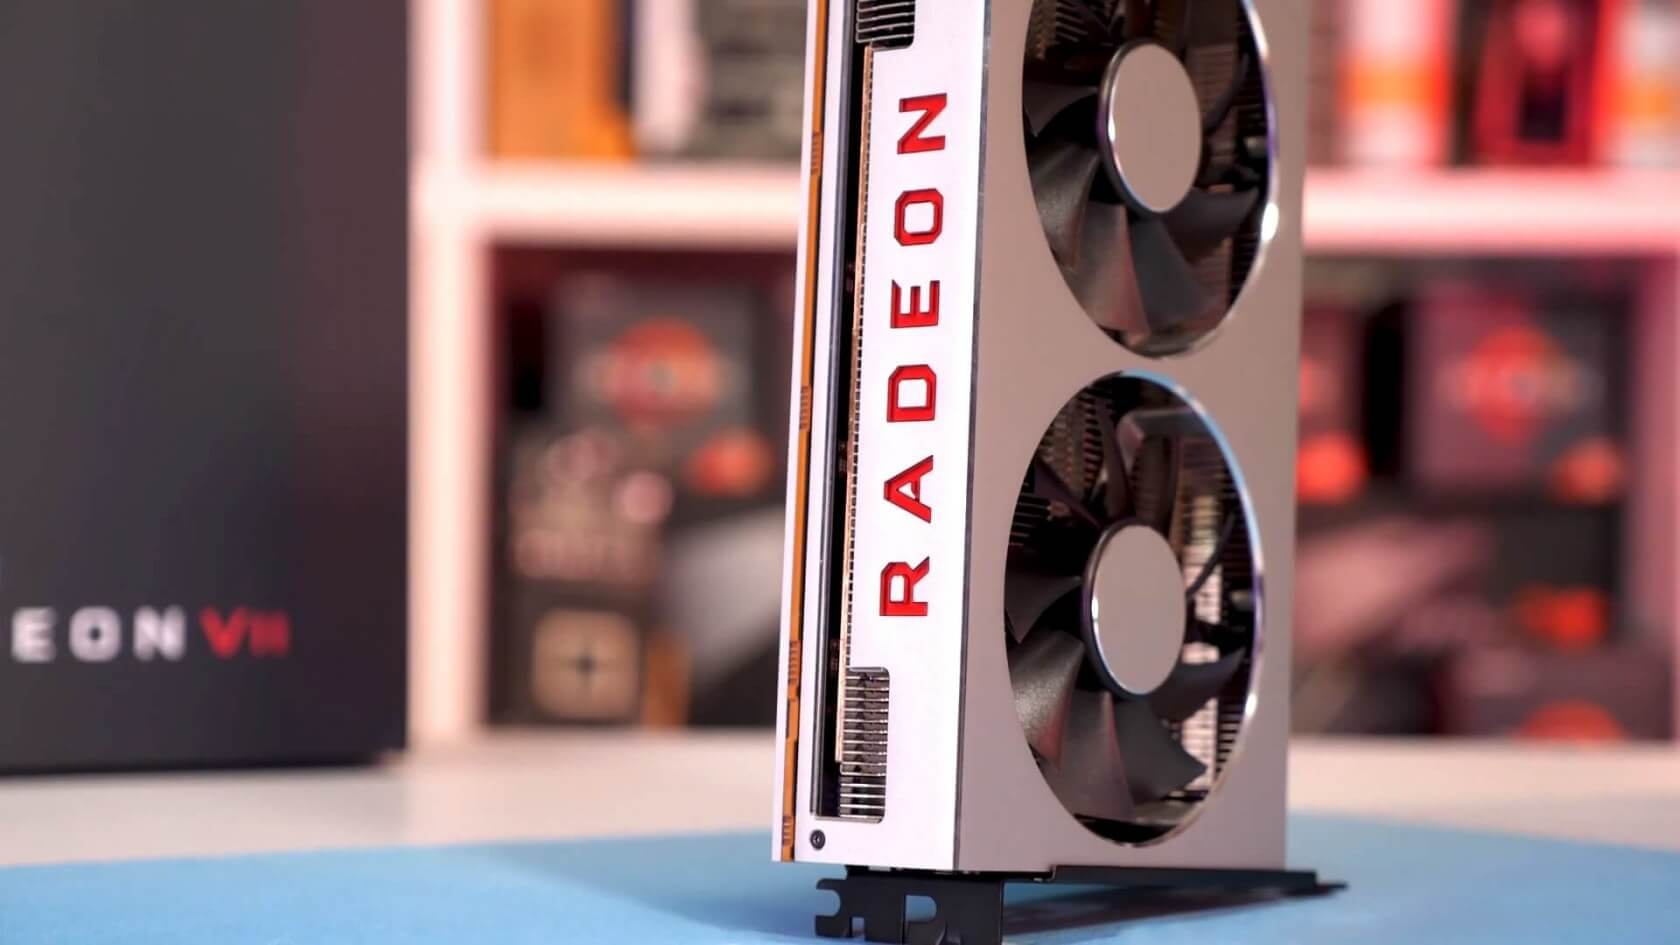 AMD's Radeon VII has reached end of life, probably